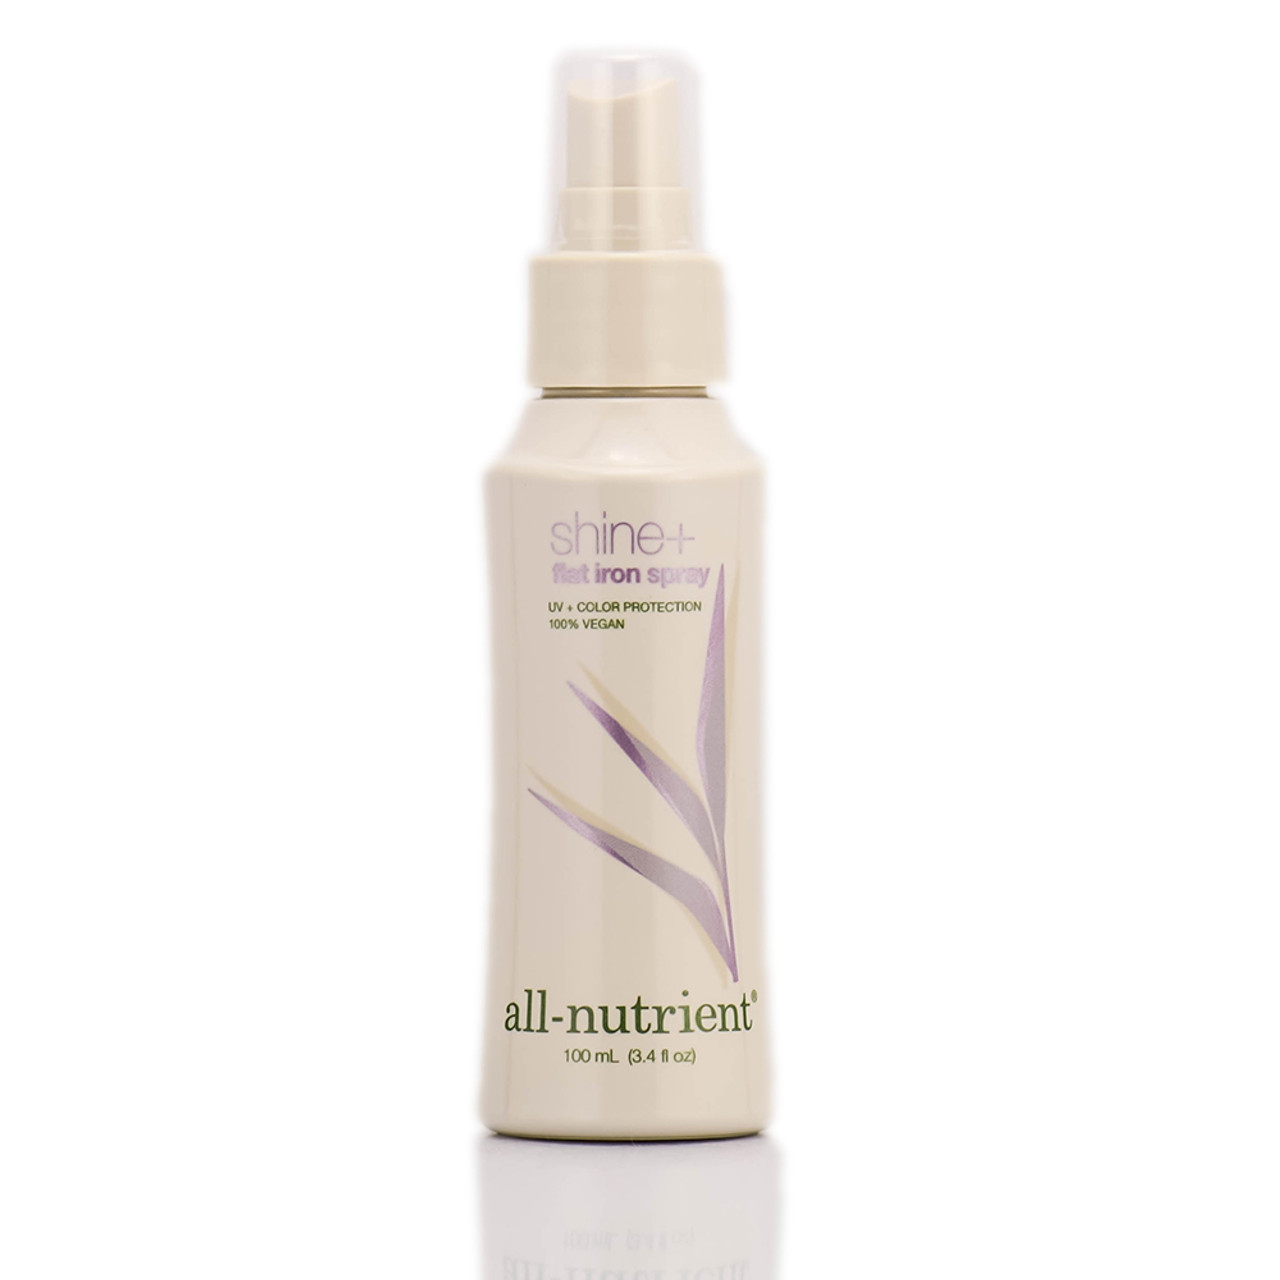 All Nutrient Shine Flat Iron Spray Sleekshop Formerly